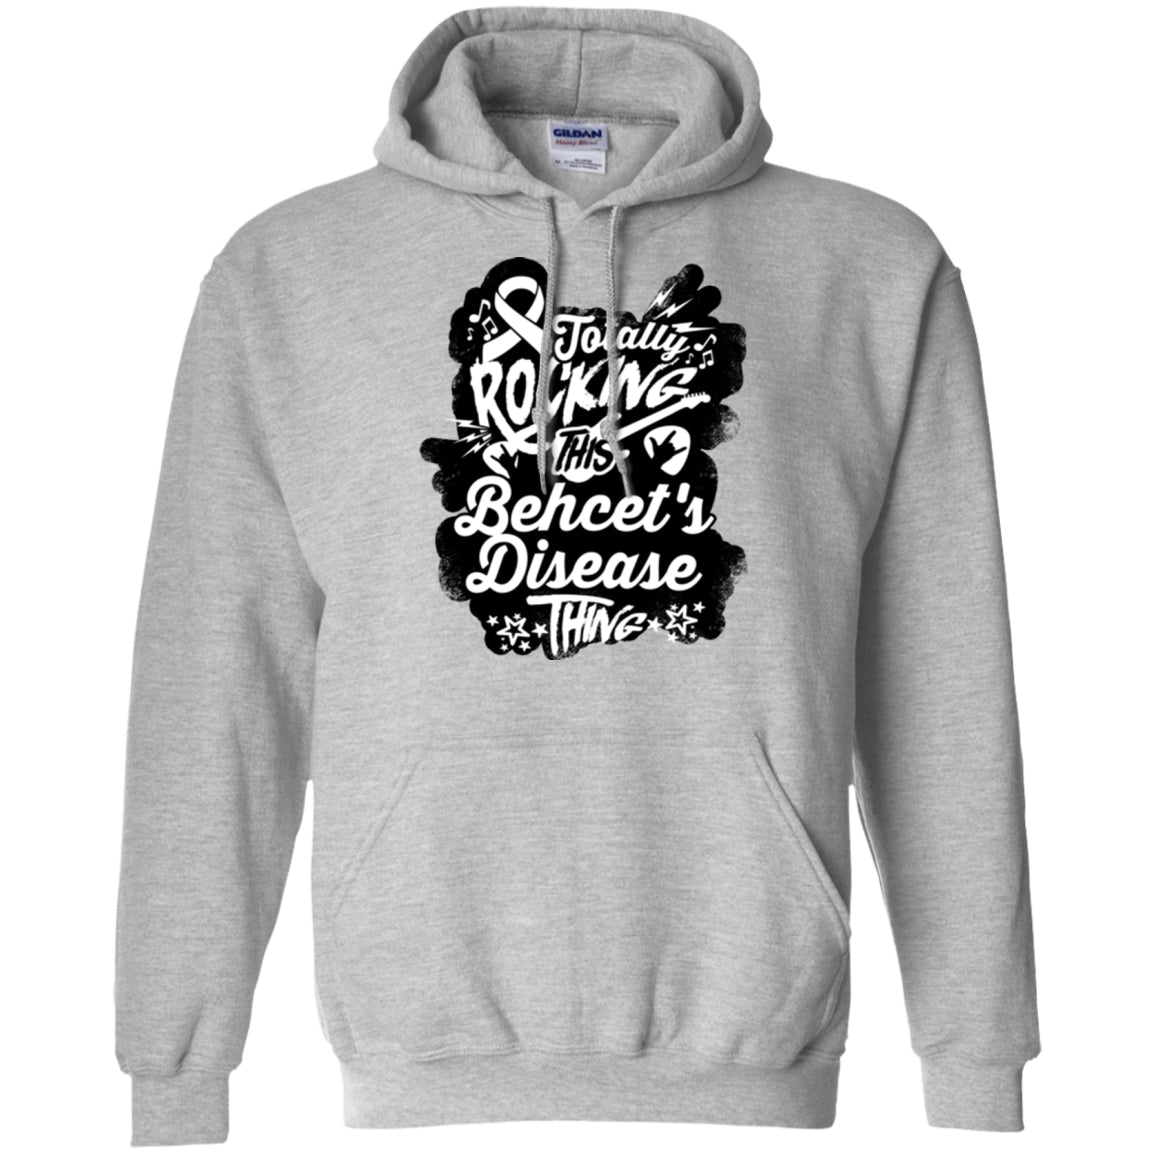 Rocking Behcet's Disease Pullover Hoodie 8 oz. - The Unchargeables